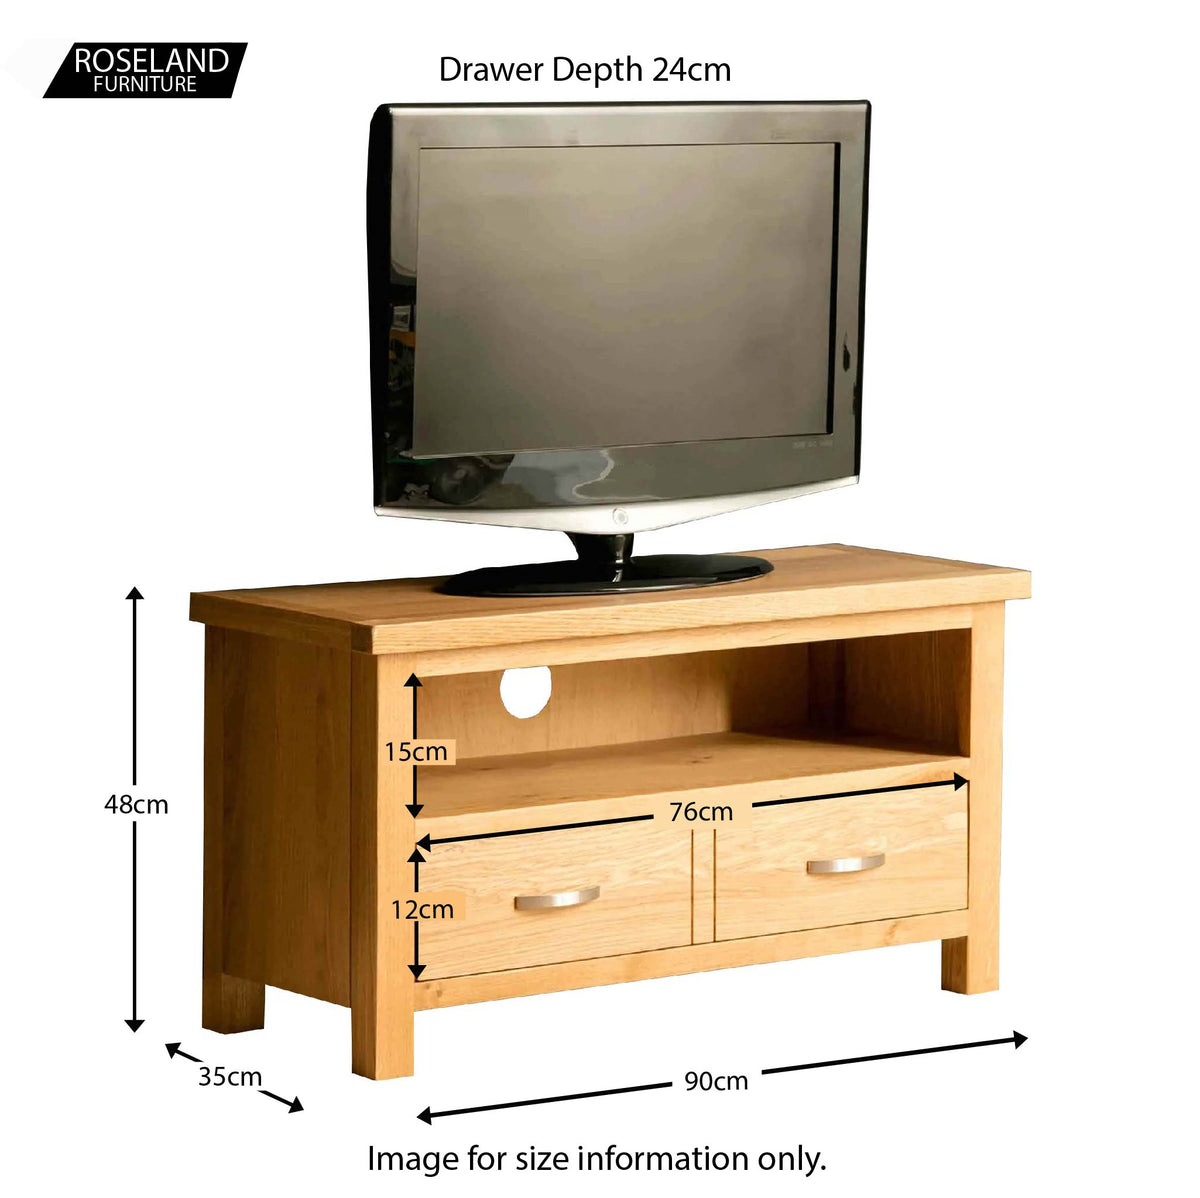 The London Oak 90cm TV Stand - size guide